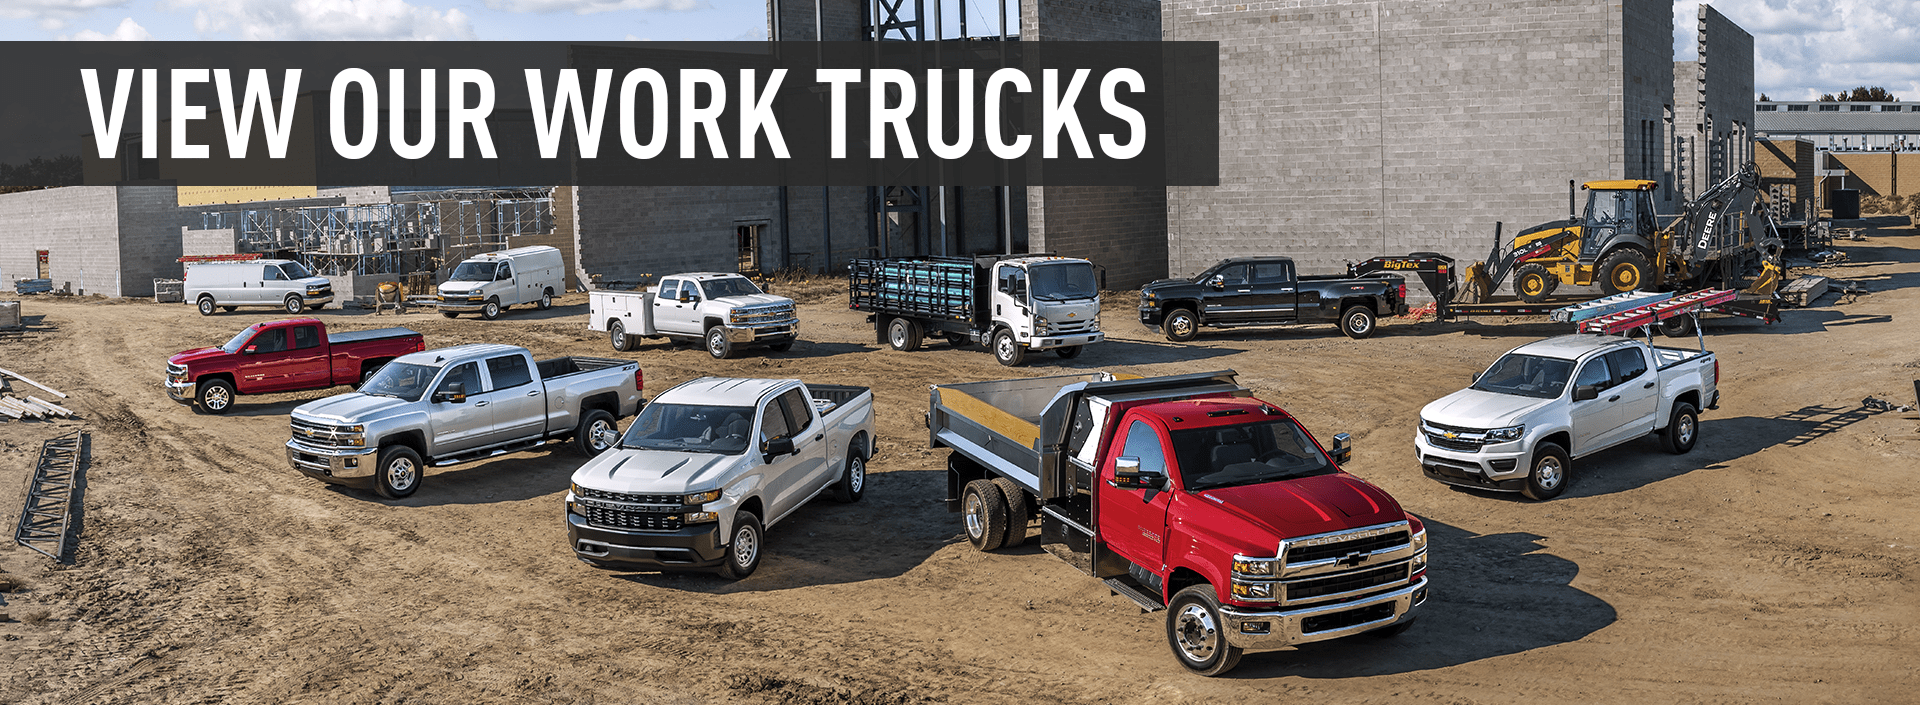 Chevrolet Work Trucks